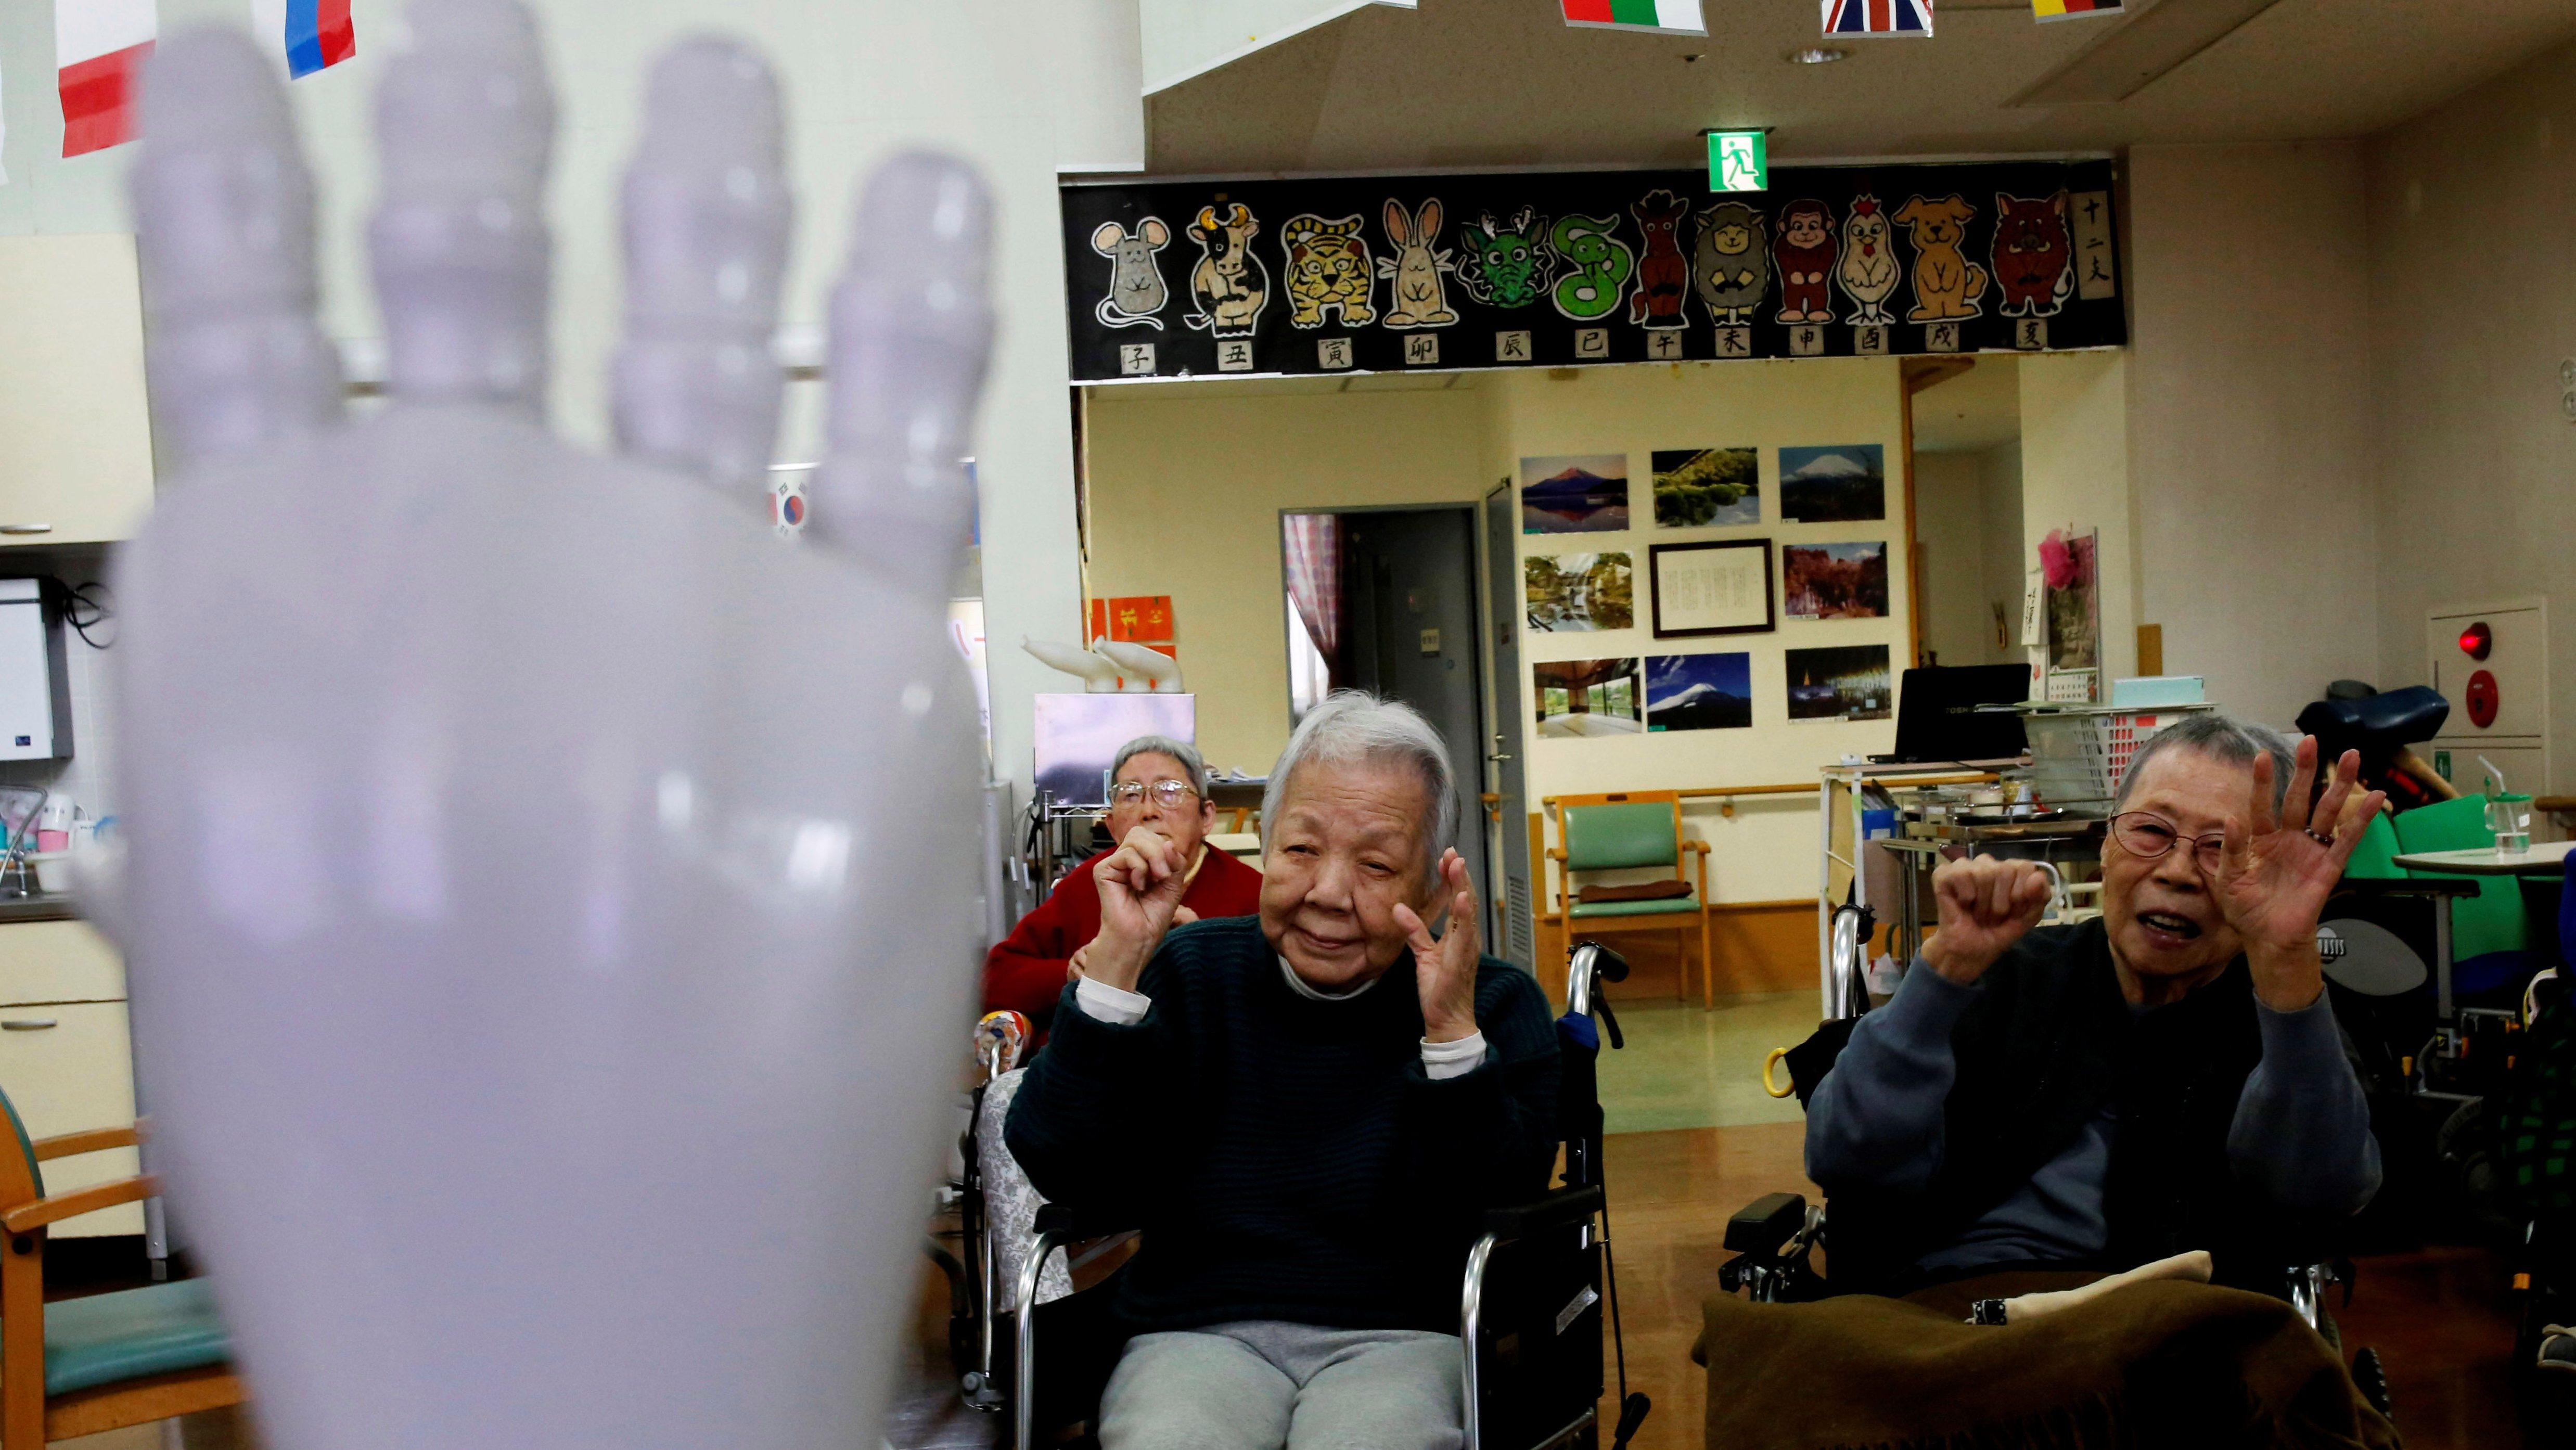 Residents follow moves made by humanoid robot 'Pepper' during an afternoon exercise routine at Shin-tomi nursing home in Tokyo, Japan, February 2, 2018.